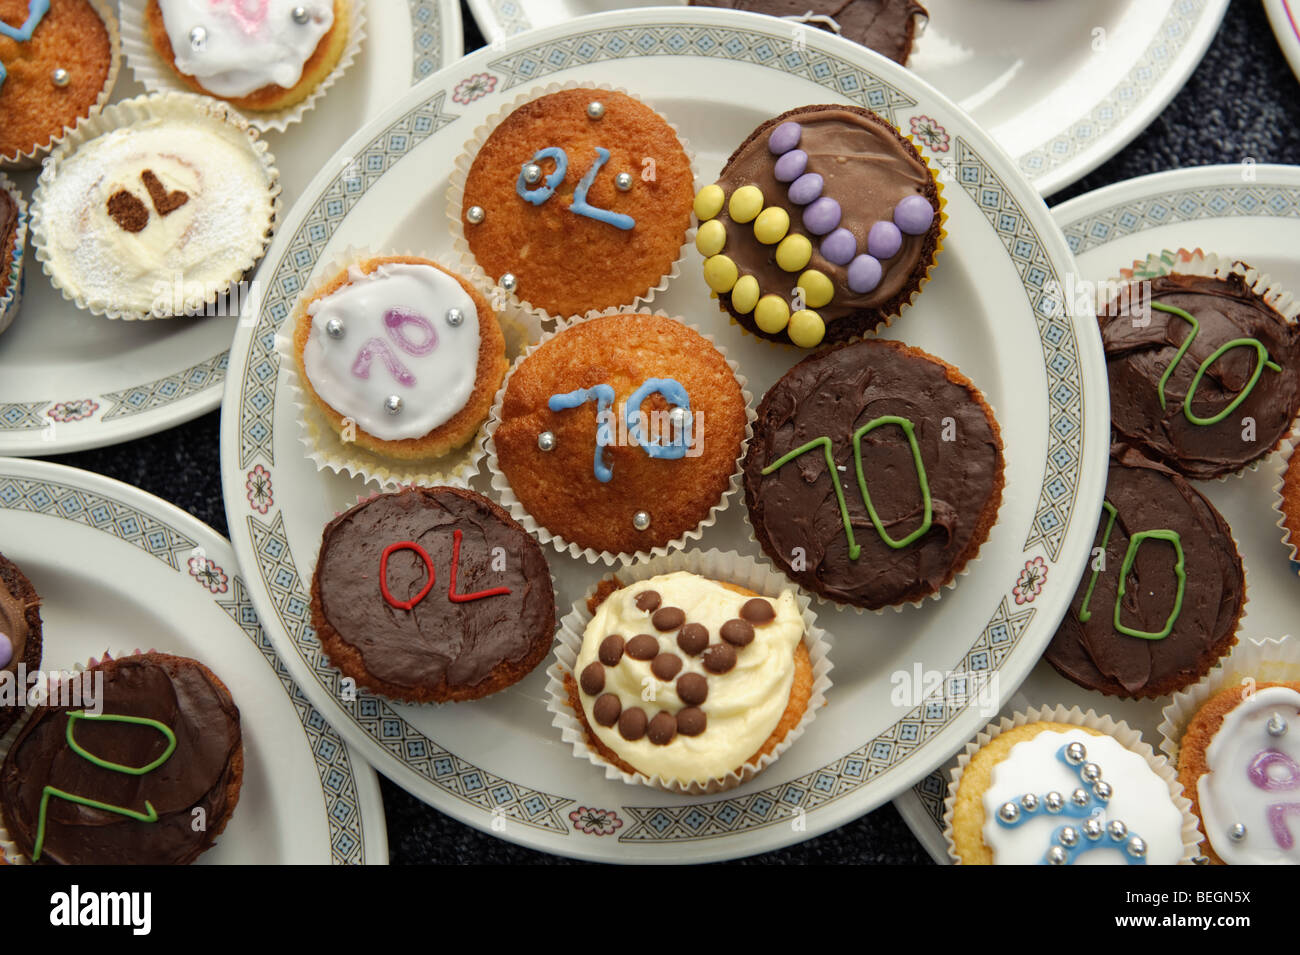 Plates of little iced cup cakes for a 70th birthday party UK - Stock Image